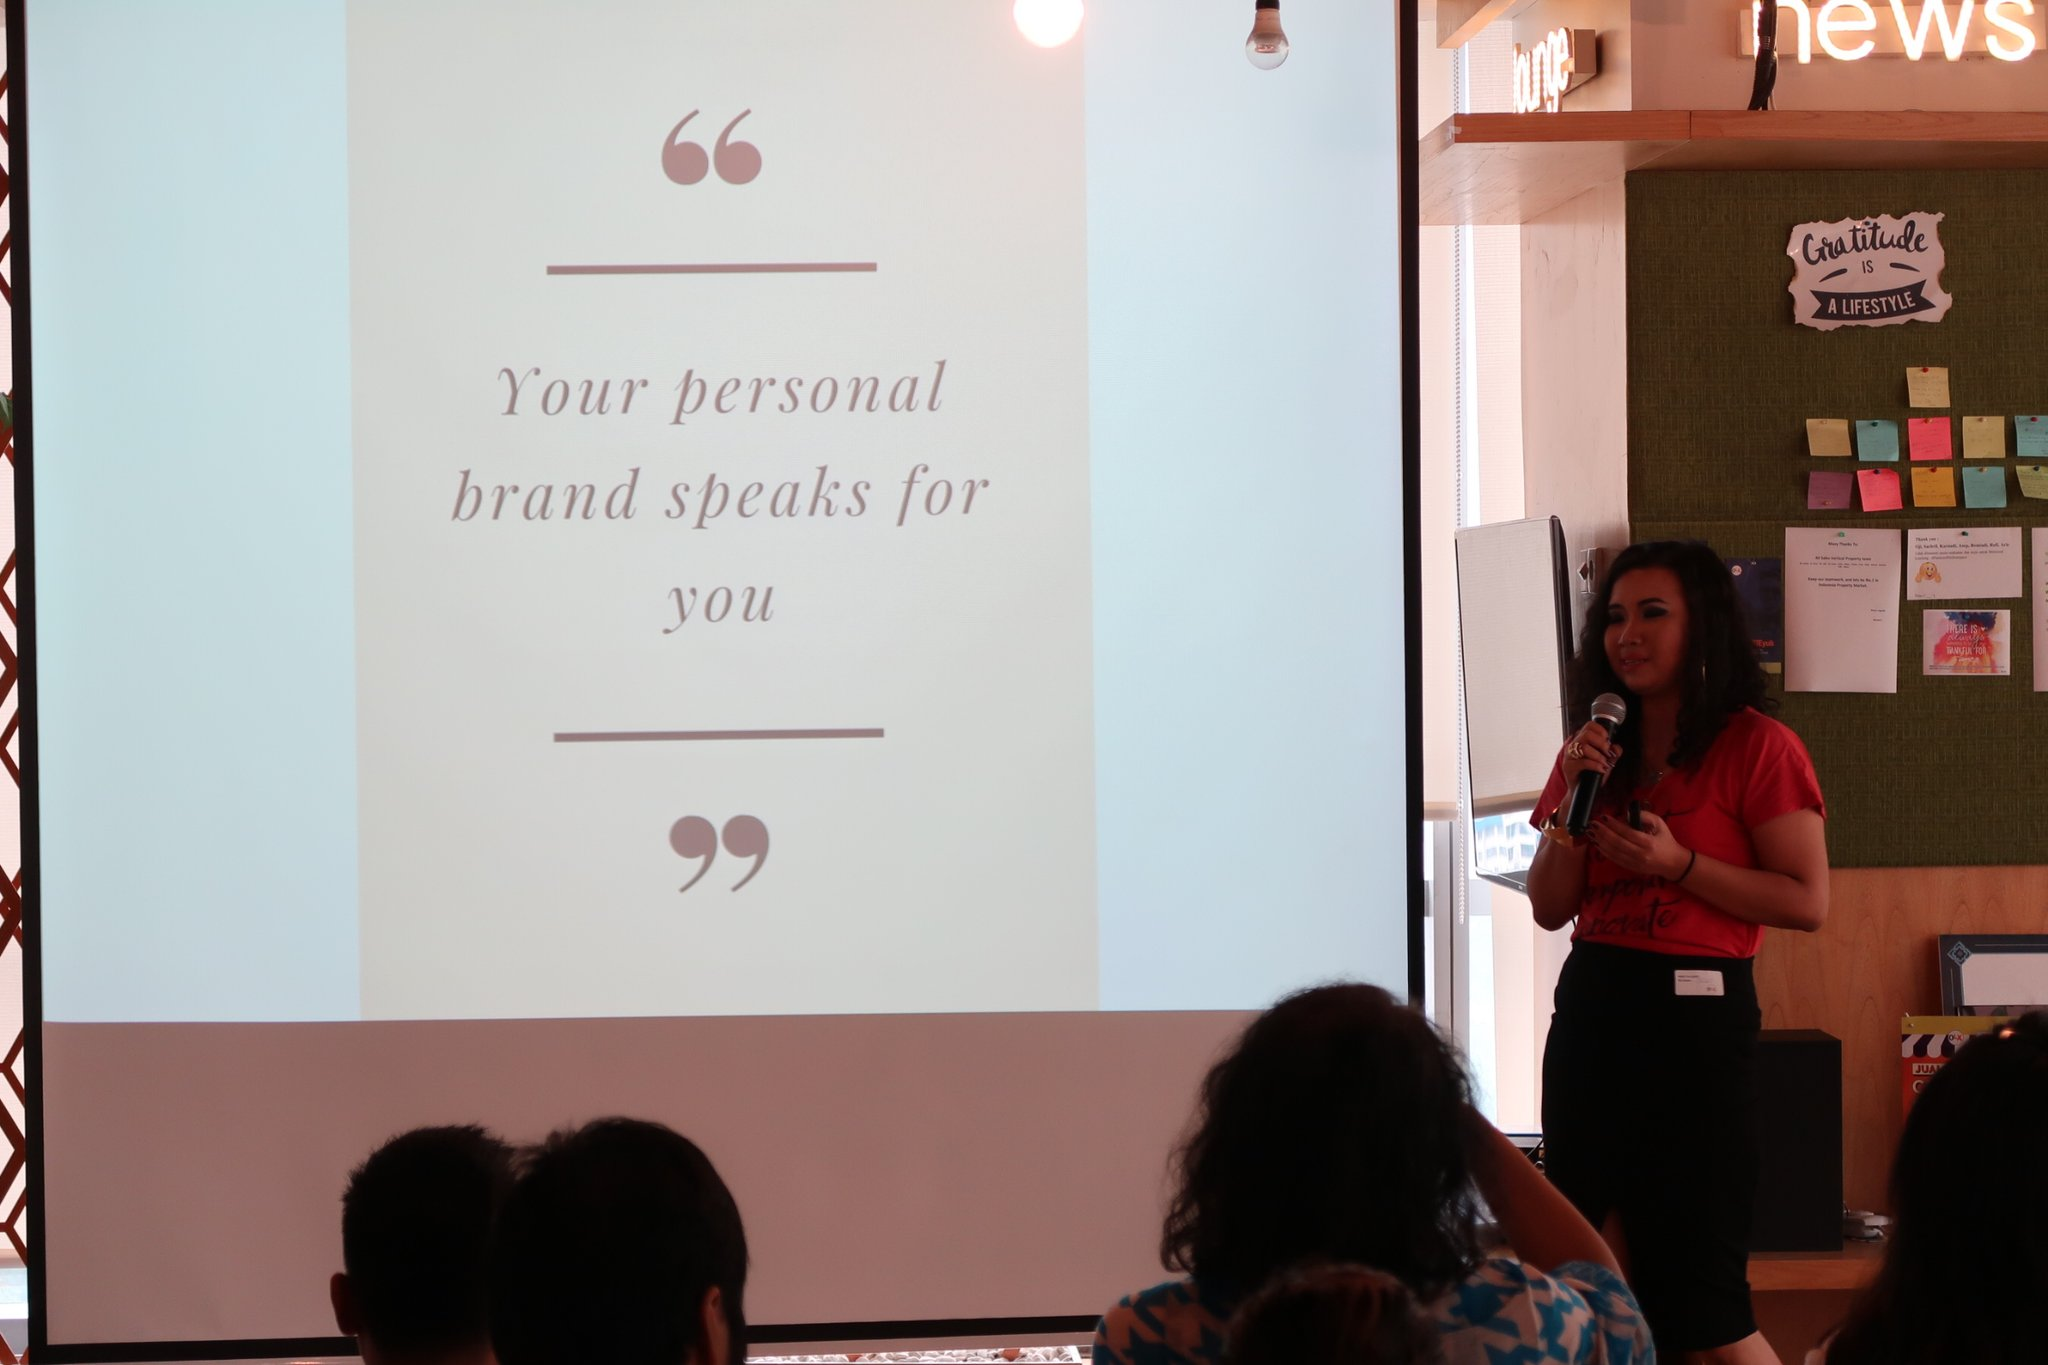 Speaking about personal branding at Indonesia Lifestyle Digital Influencers gathering https://t.co/5IOfXuK59A